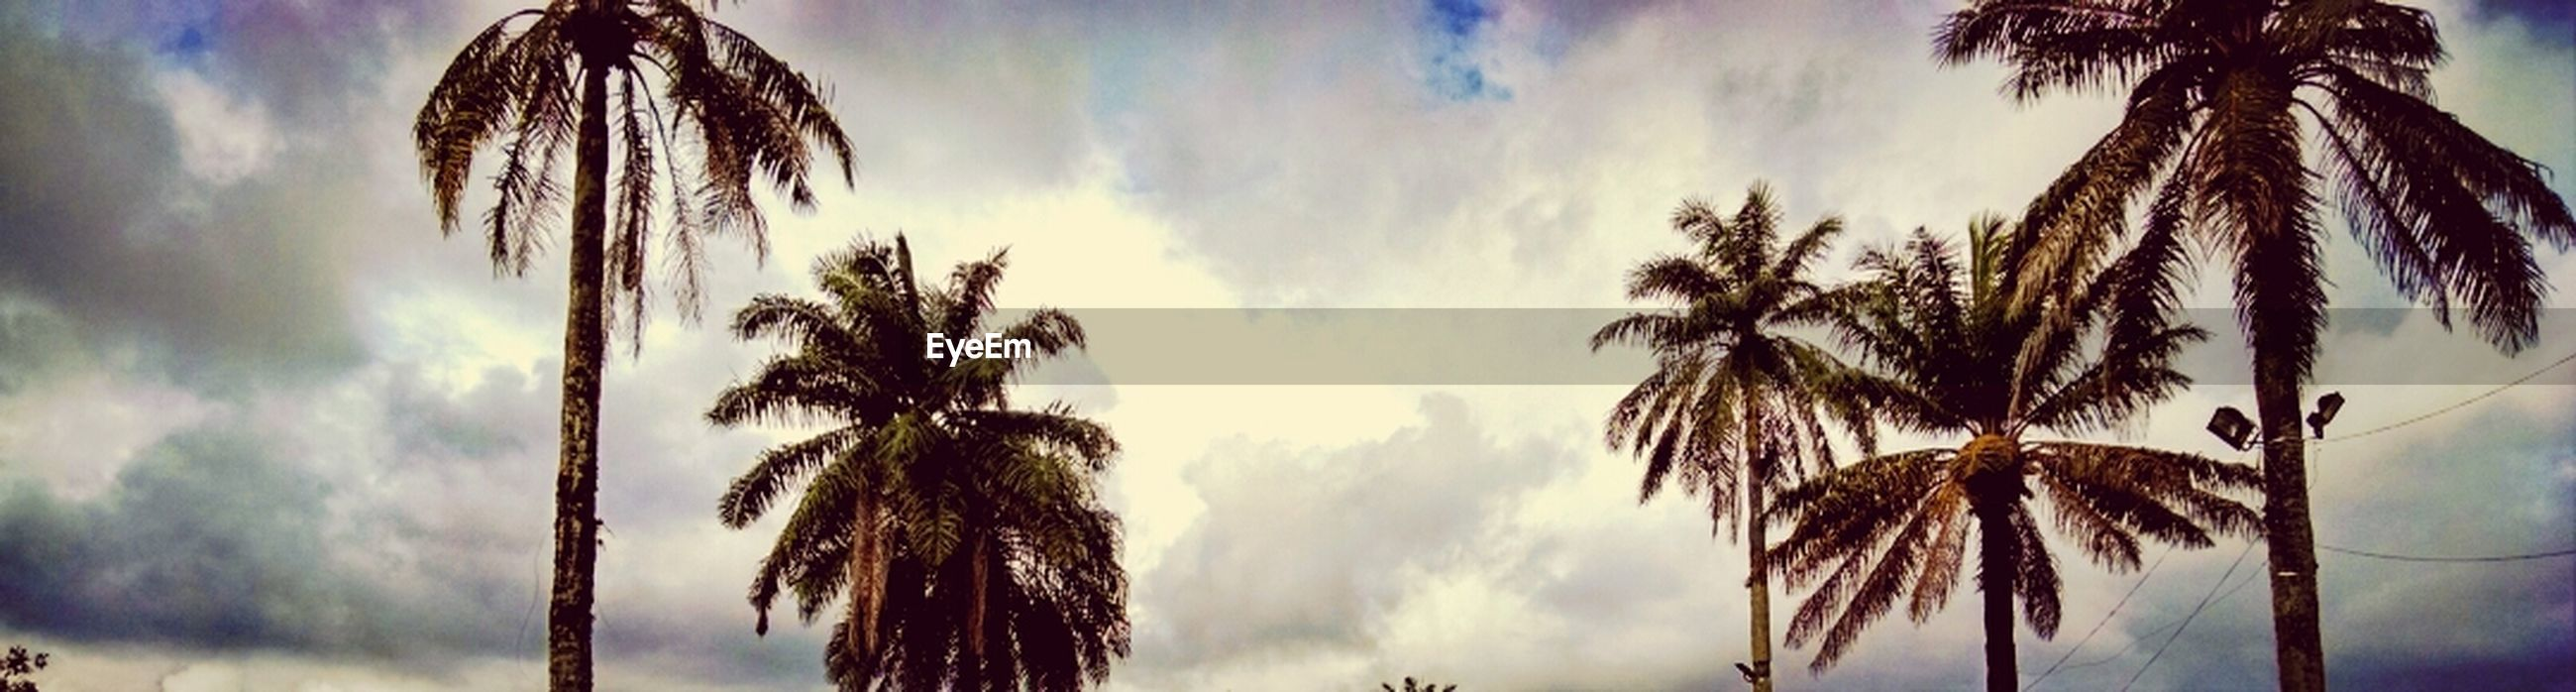 palm tree, sky, low angle view, tree, cloud - sky, cloud, coconut palm tree, cloudy, silhouette, tranquility, tree trunk, nature, beauty in nature, palm leaf, growth, scenics, palm frond, tranquil scene, tall - high, outdoors